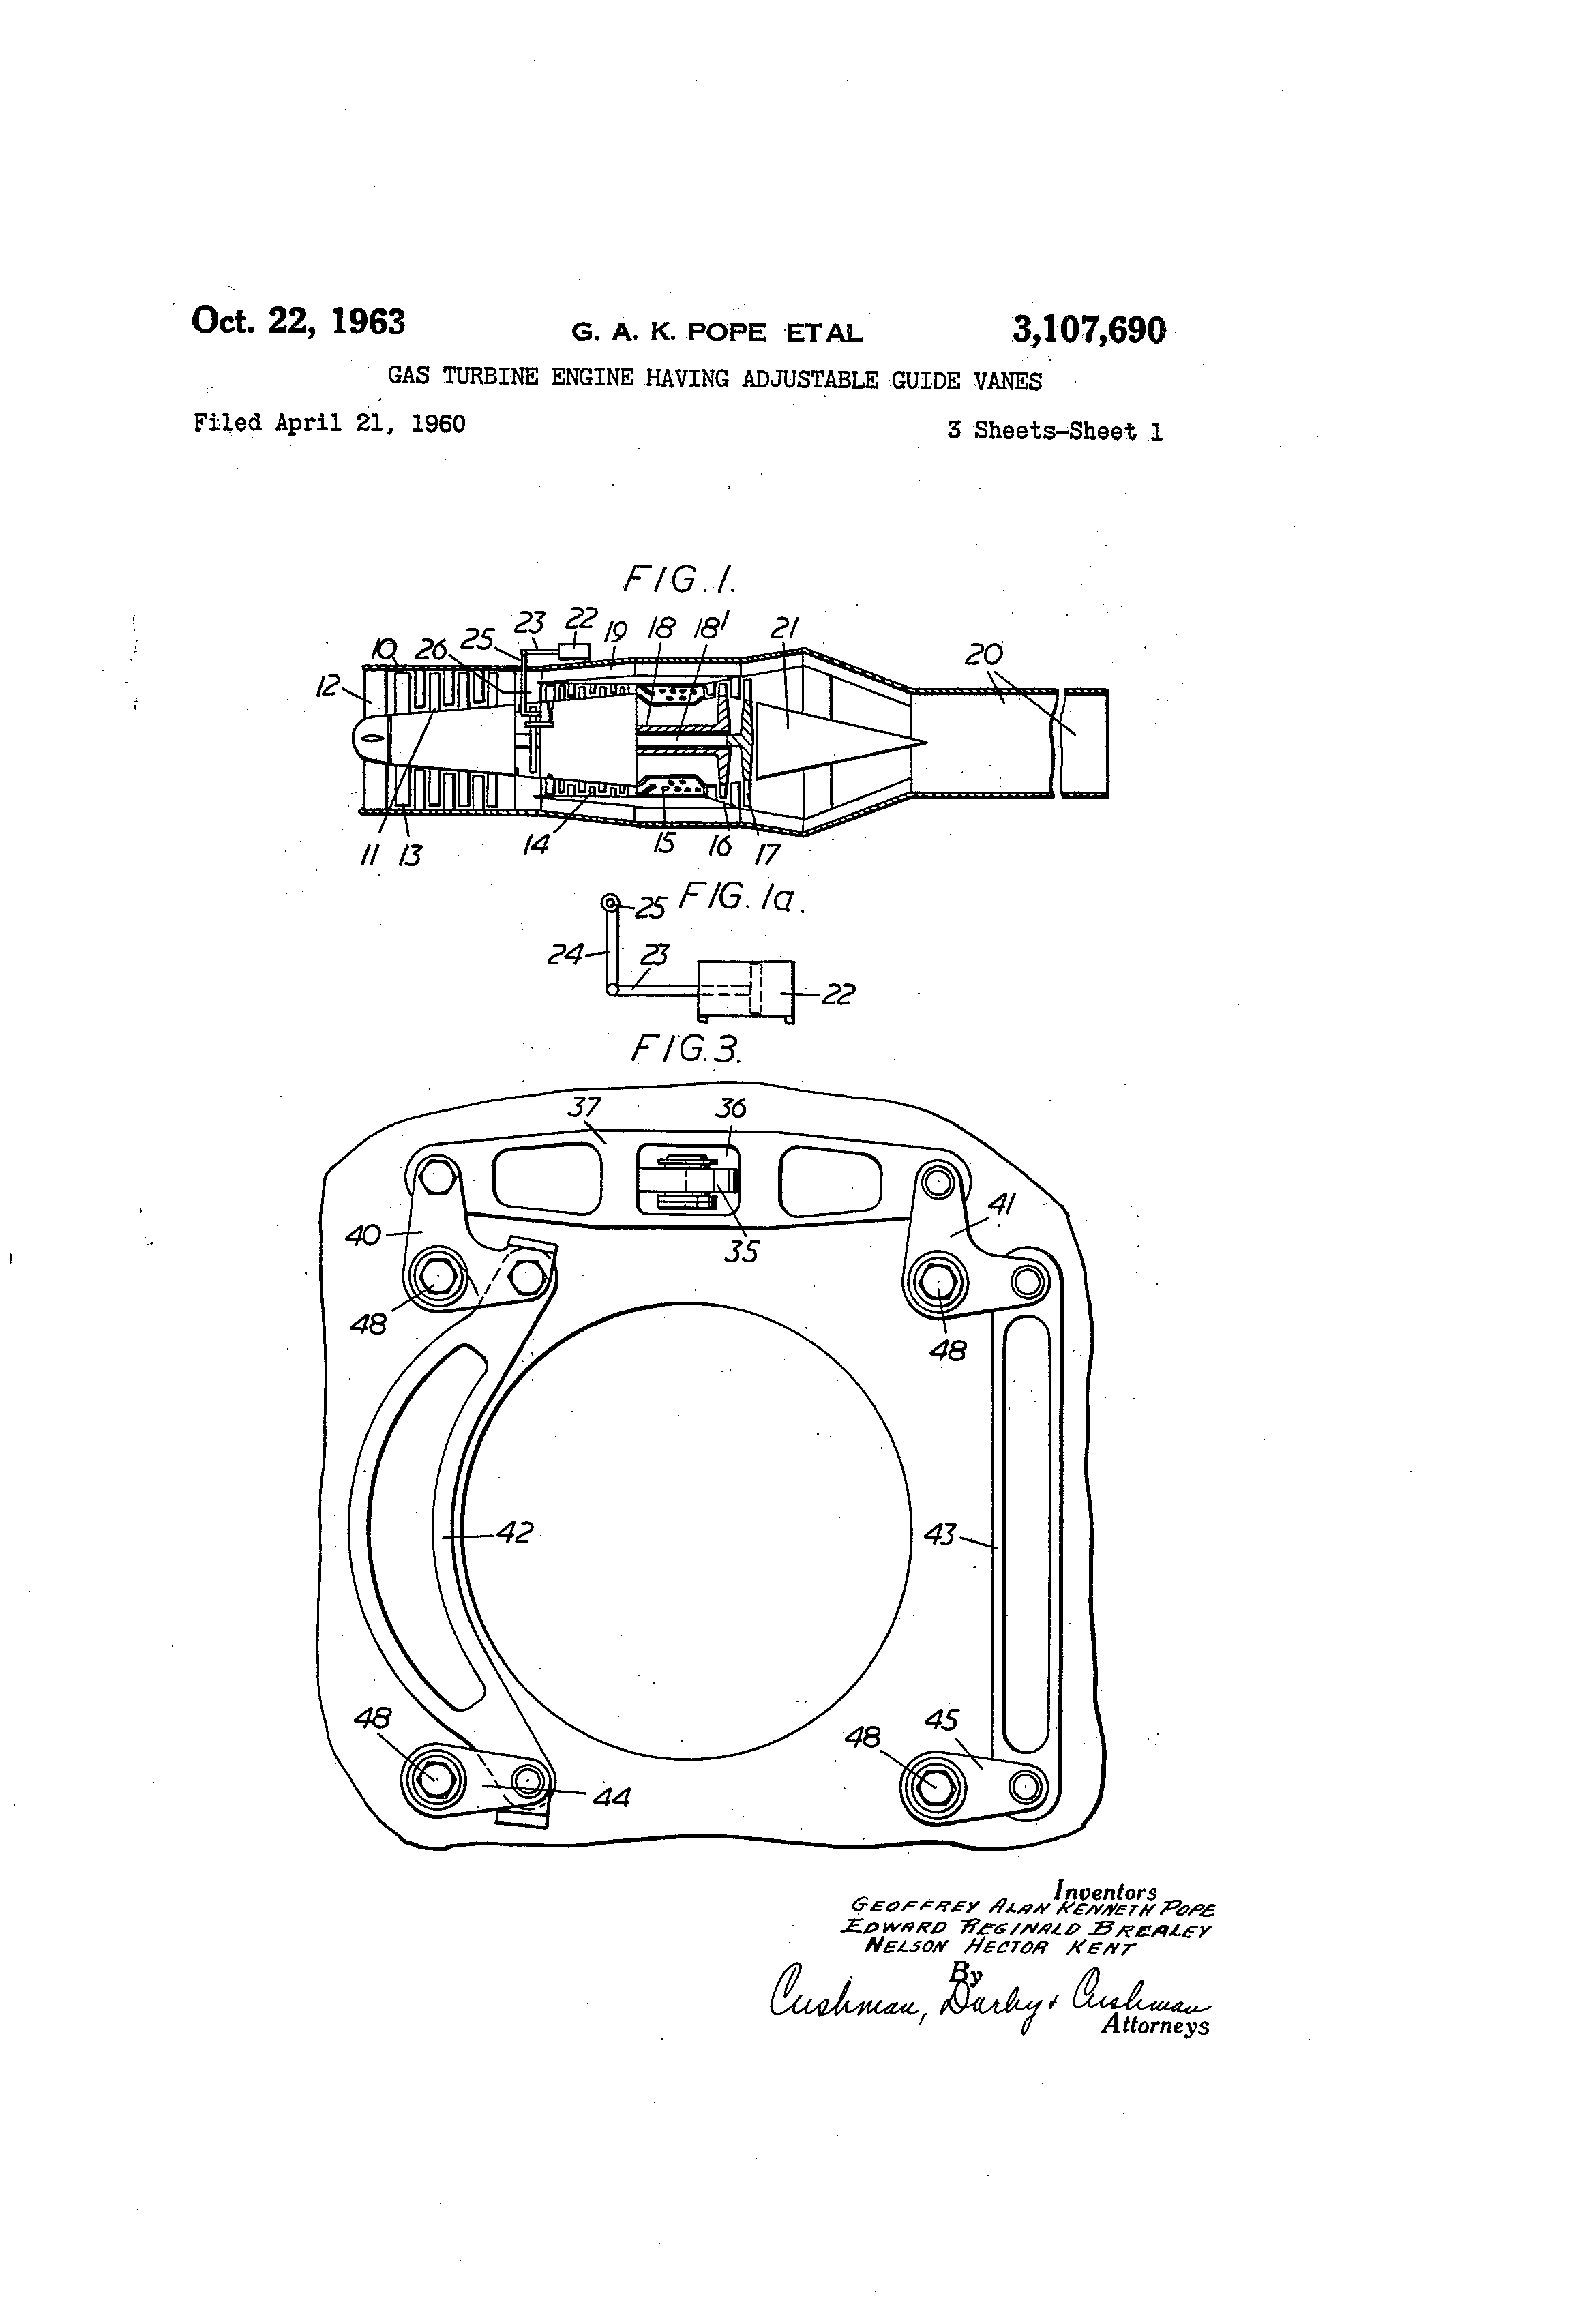 Patent US Gas turbine engine having adjustable guide